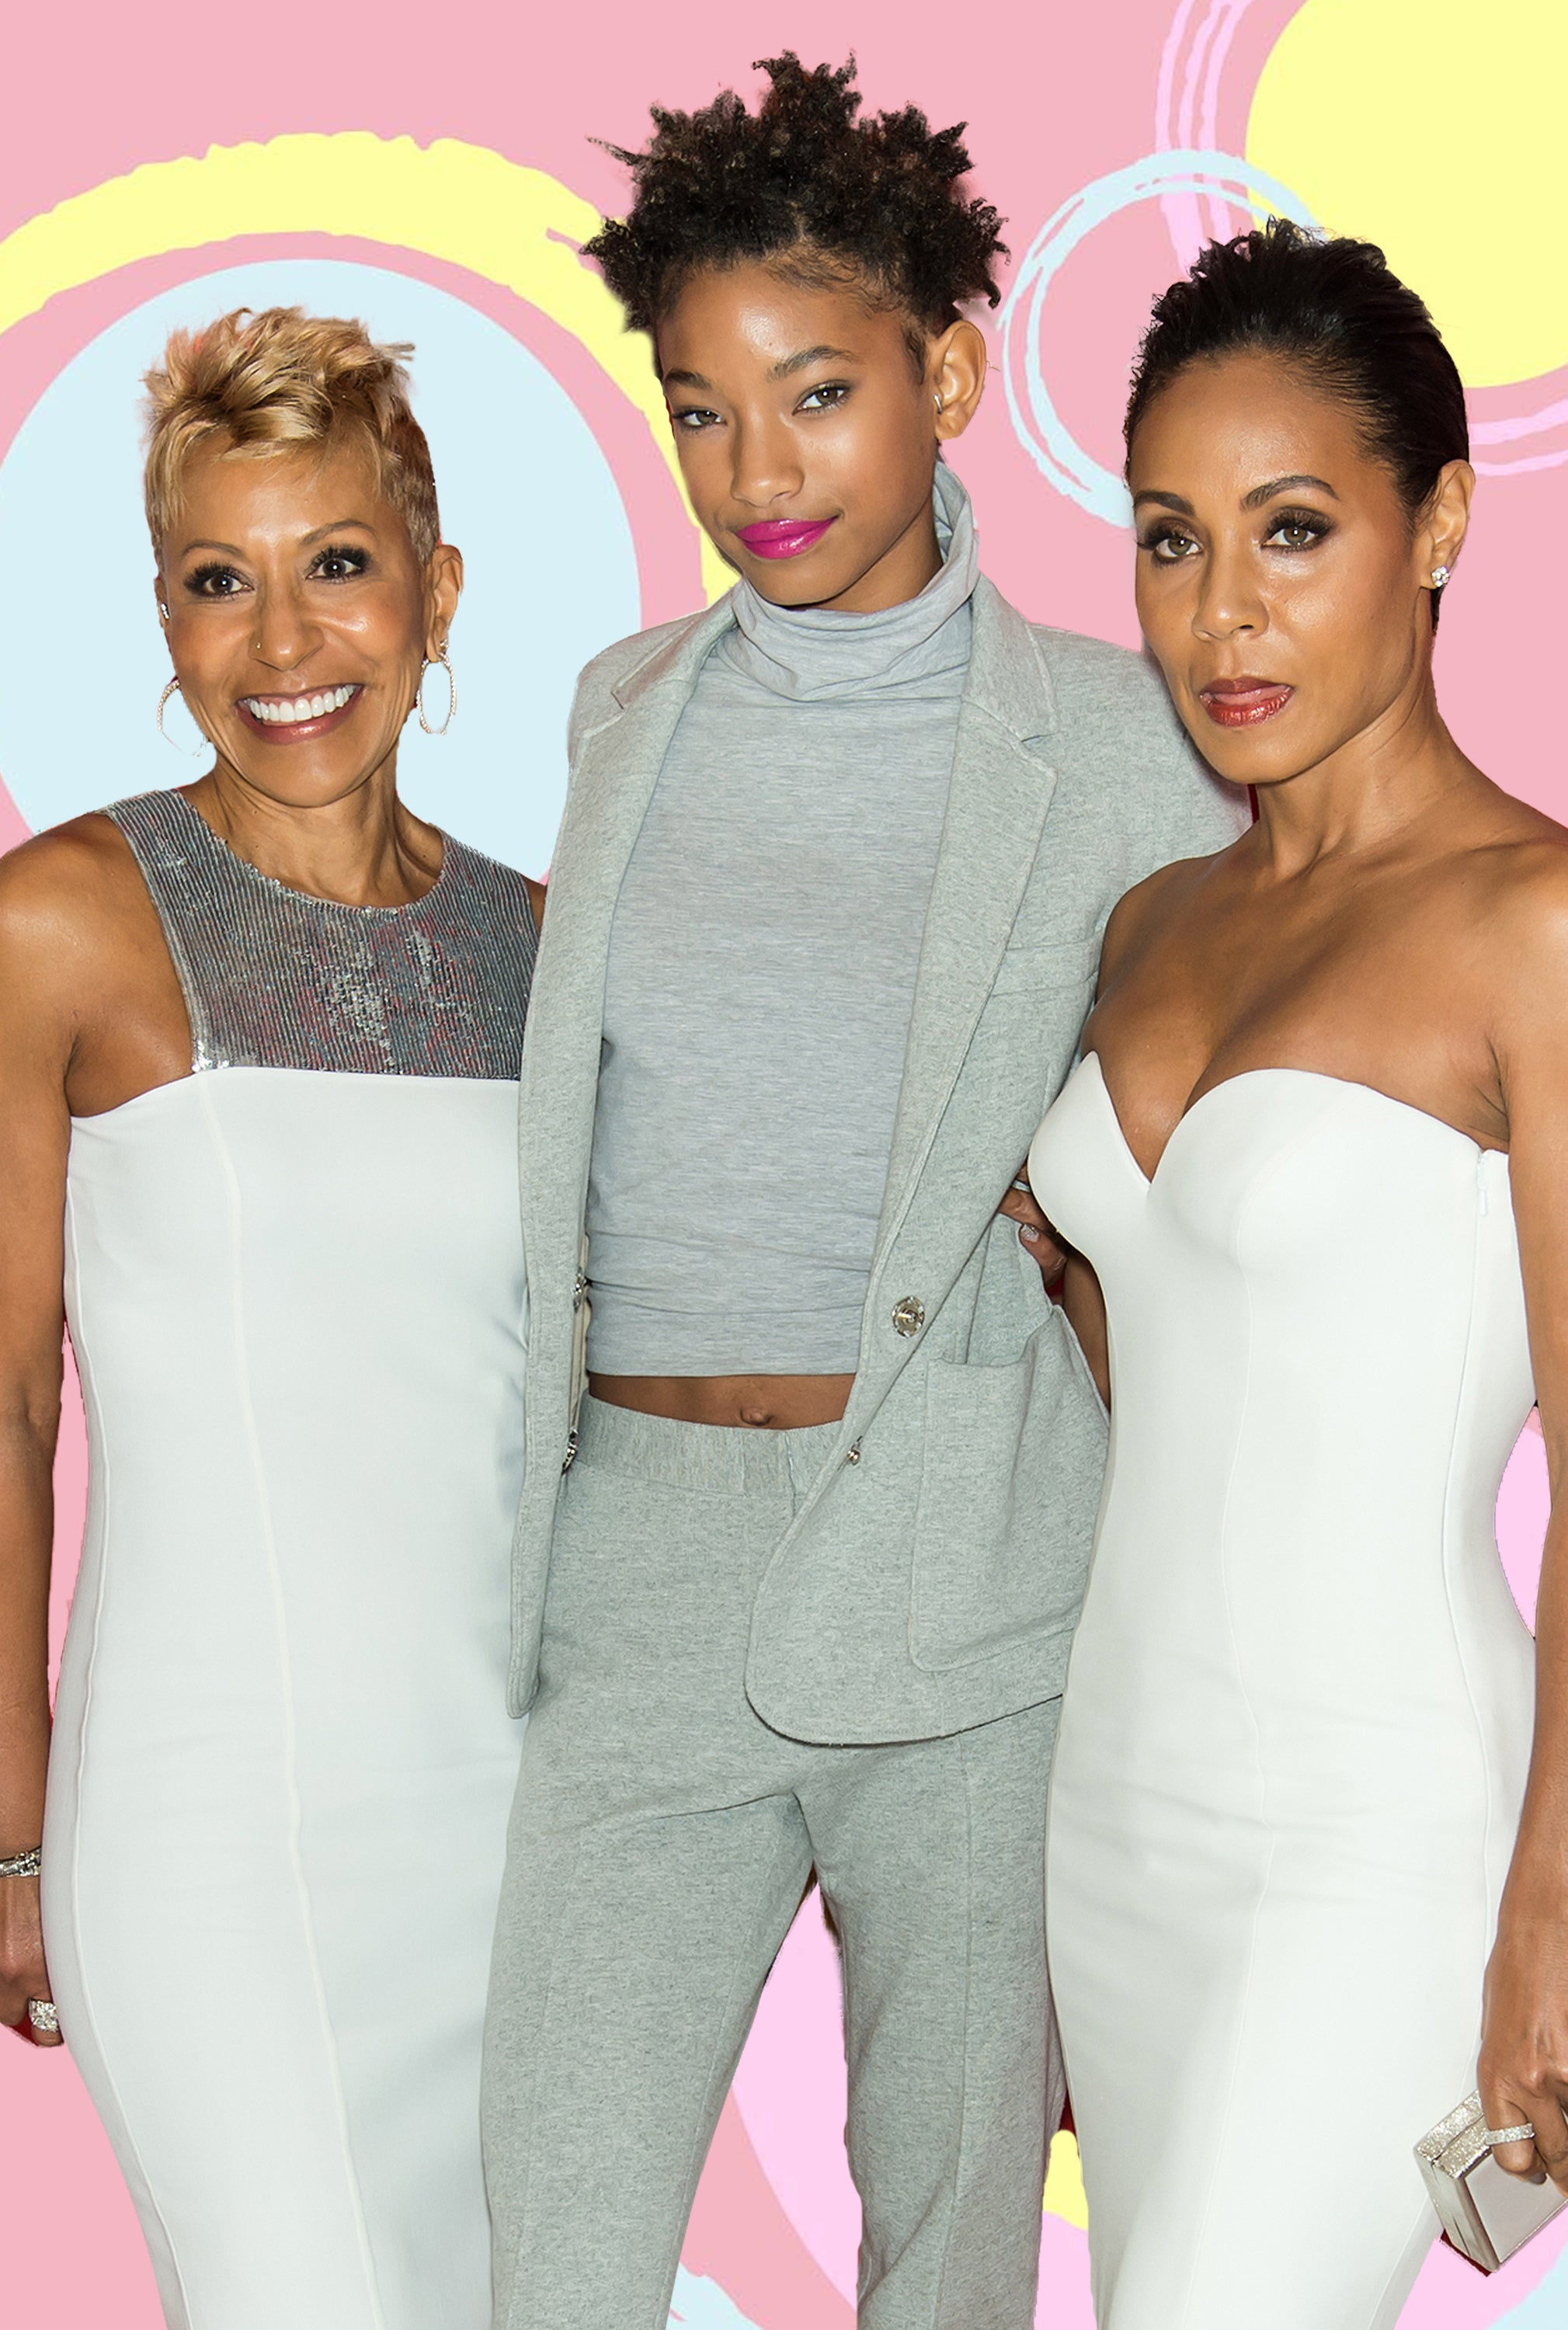 The Quick Read: Jada Pinkett Smith, Willow, And Jada's Mom Have Landed A Talk Show On Facebook